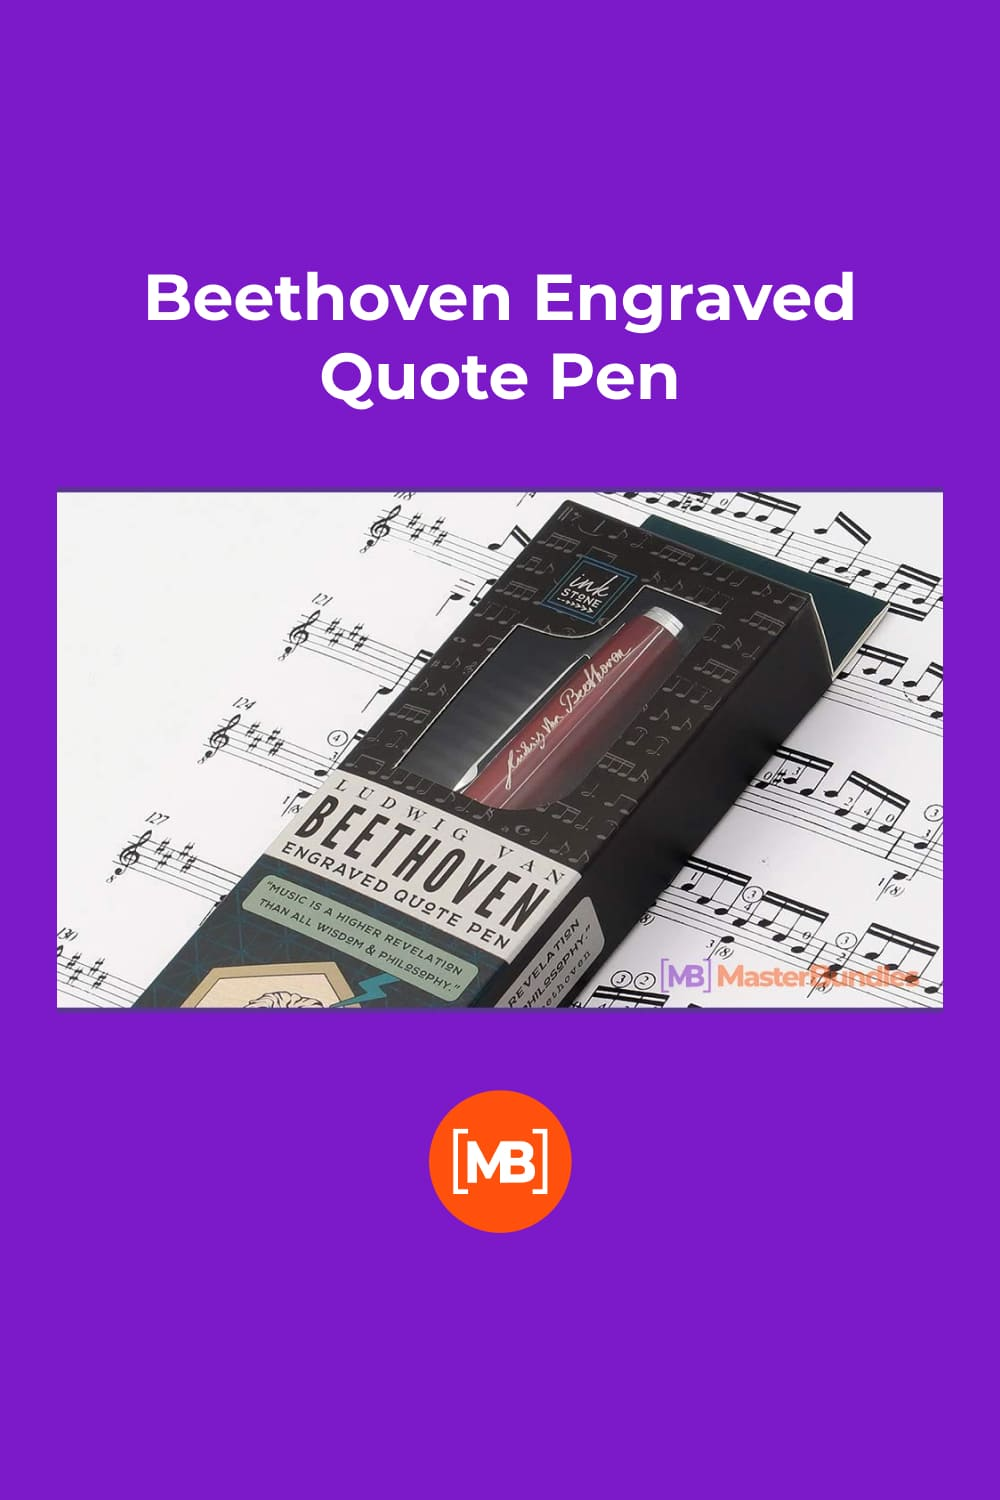 Beethoven Engraved Quote Pen. Gifts for Musicians.